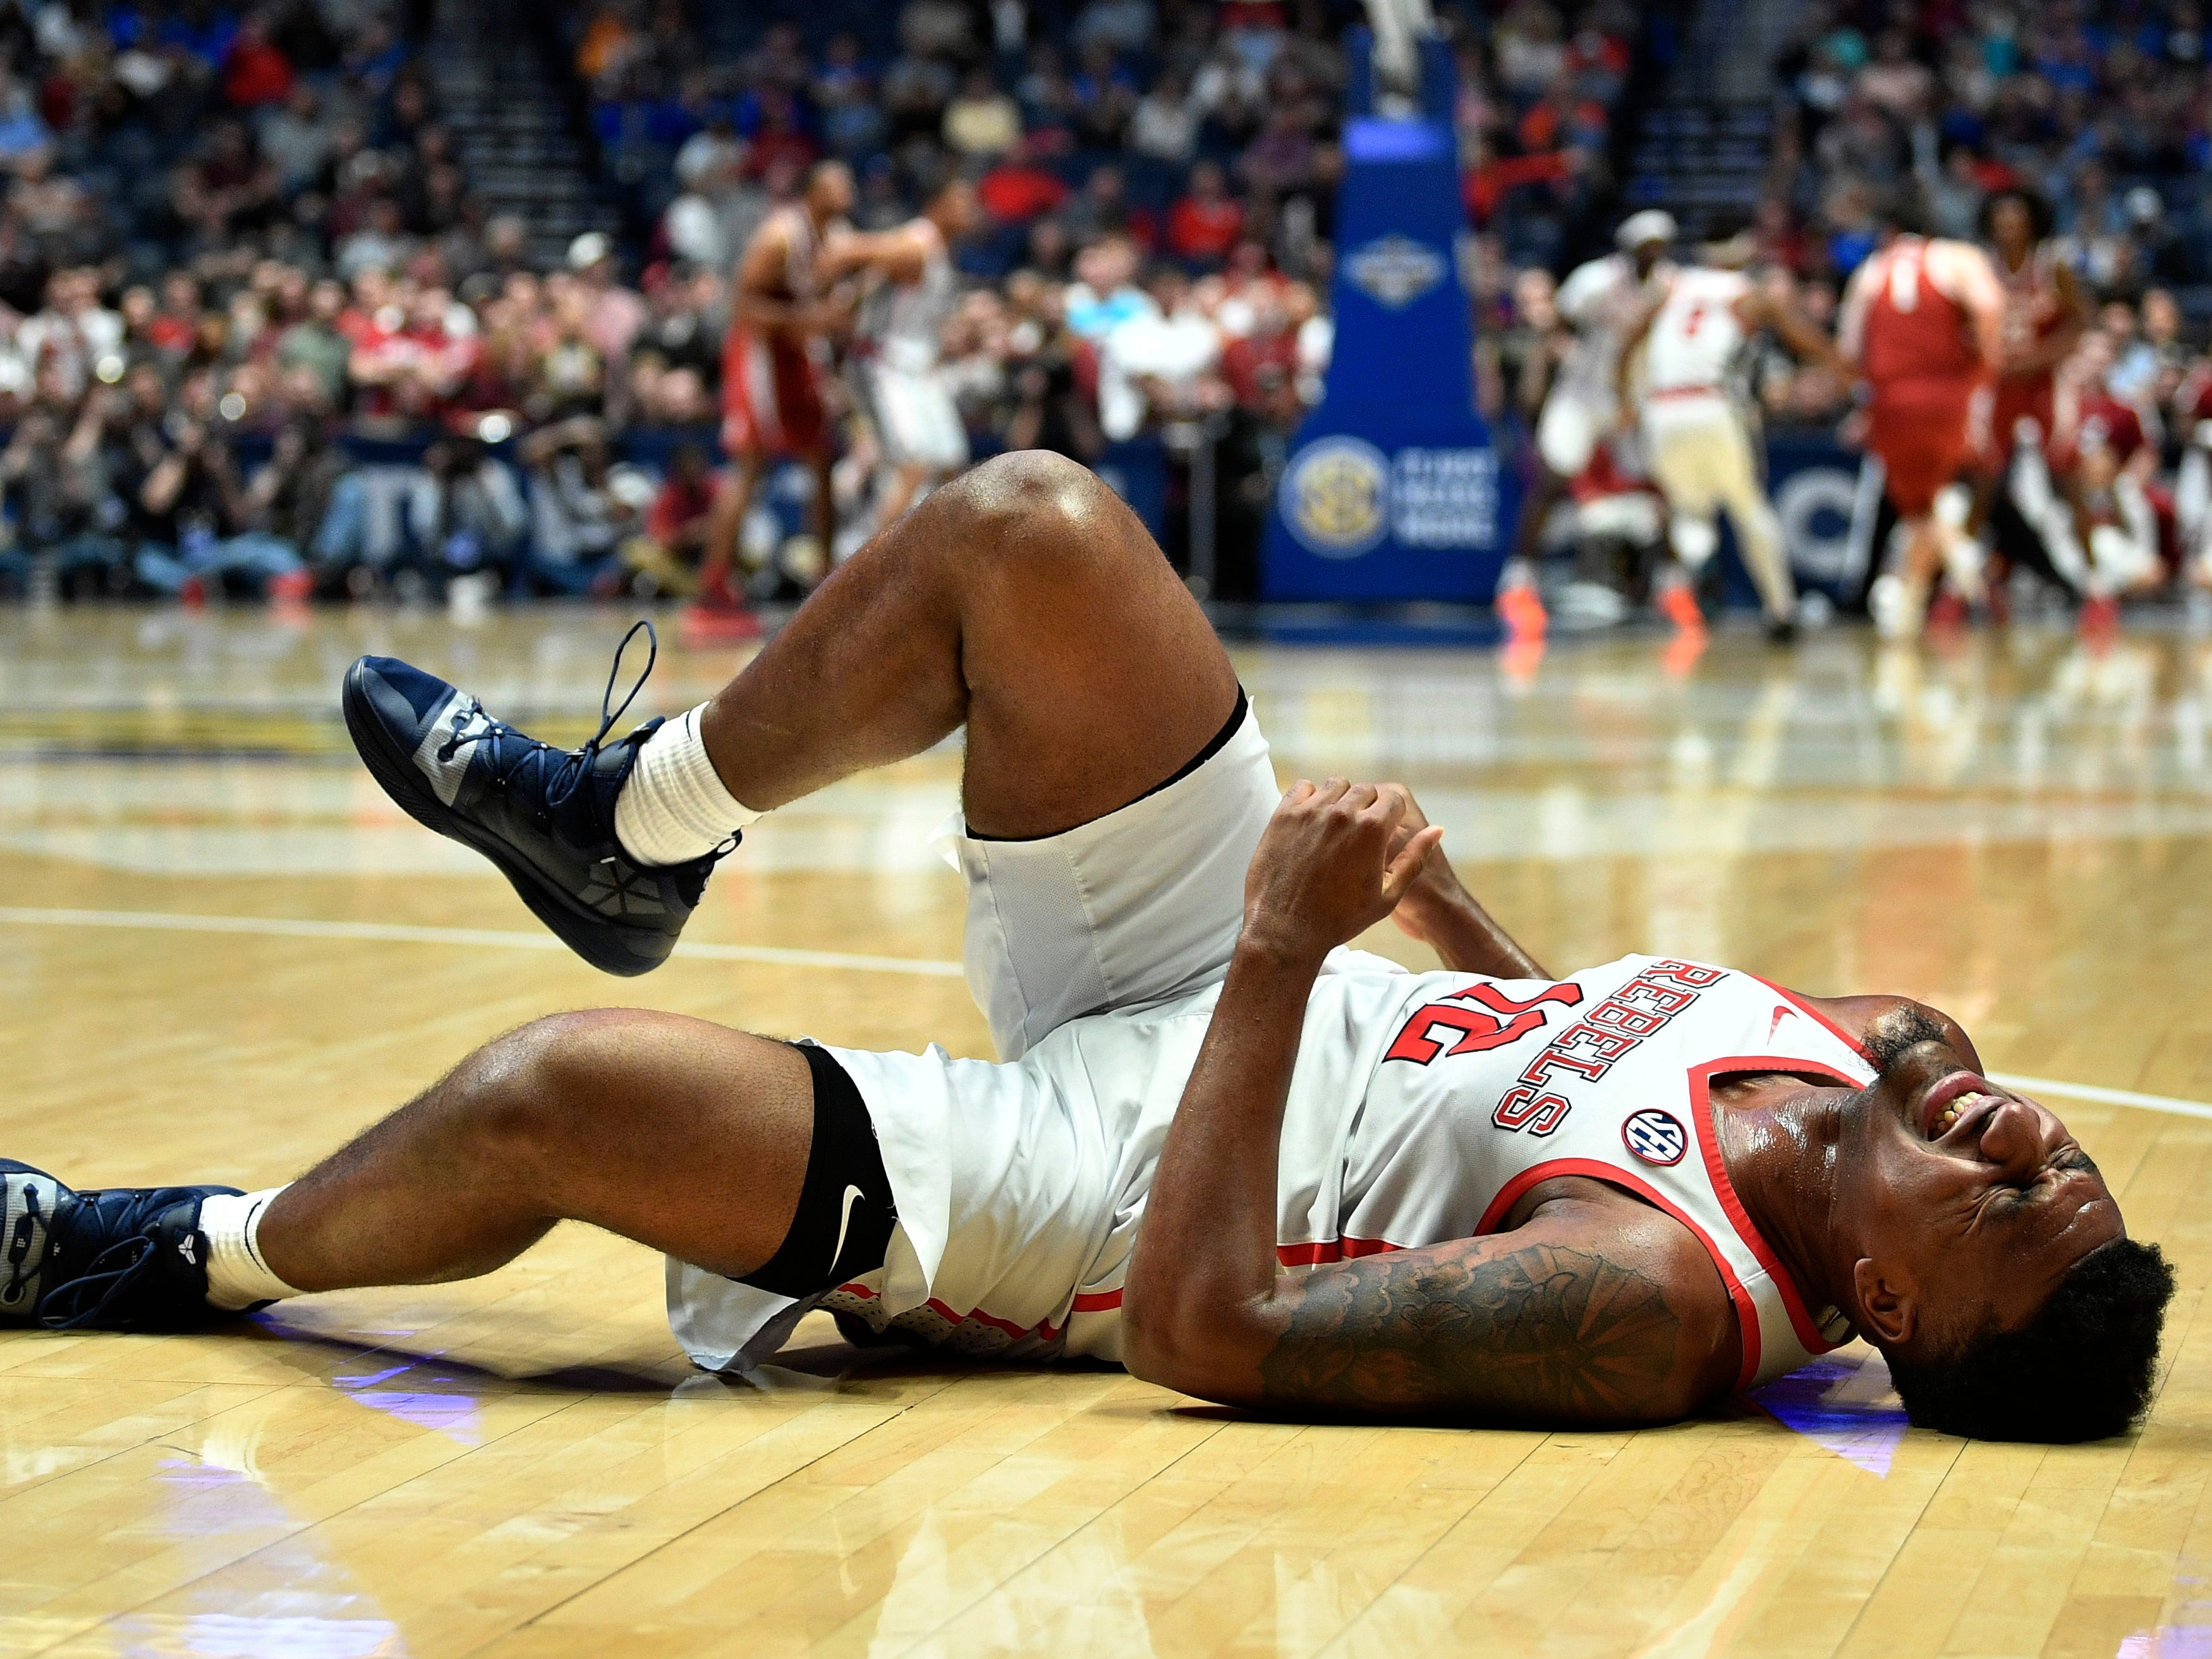 Ole Miss forward Bruce Stevens (12) falls to the court with an injury during the second half of the SEC Men's Basketball Tournament game against Alabama at Bridgestone Arena in Nashville, Tenn., Thursday, March 14, 2019. He later returned to the game.